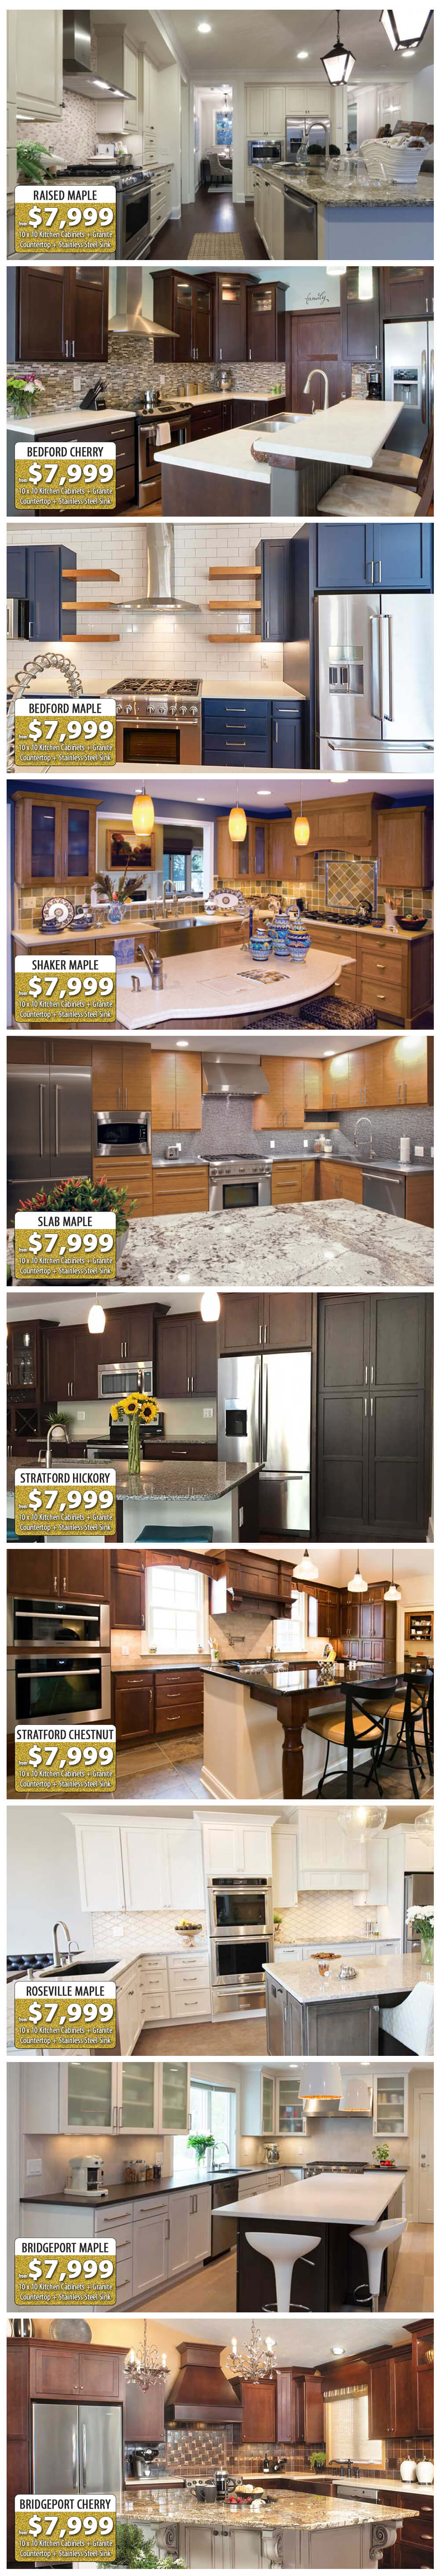 Gold Package 10' X 10' Kitchen Cabinet Sale